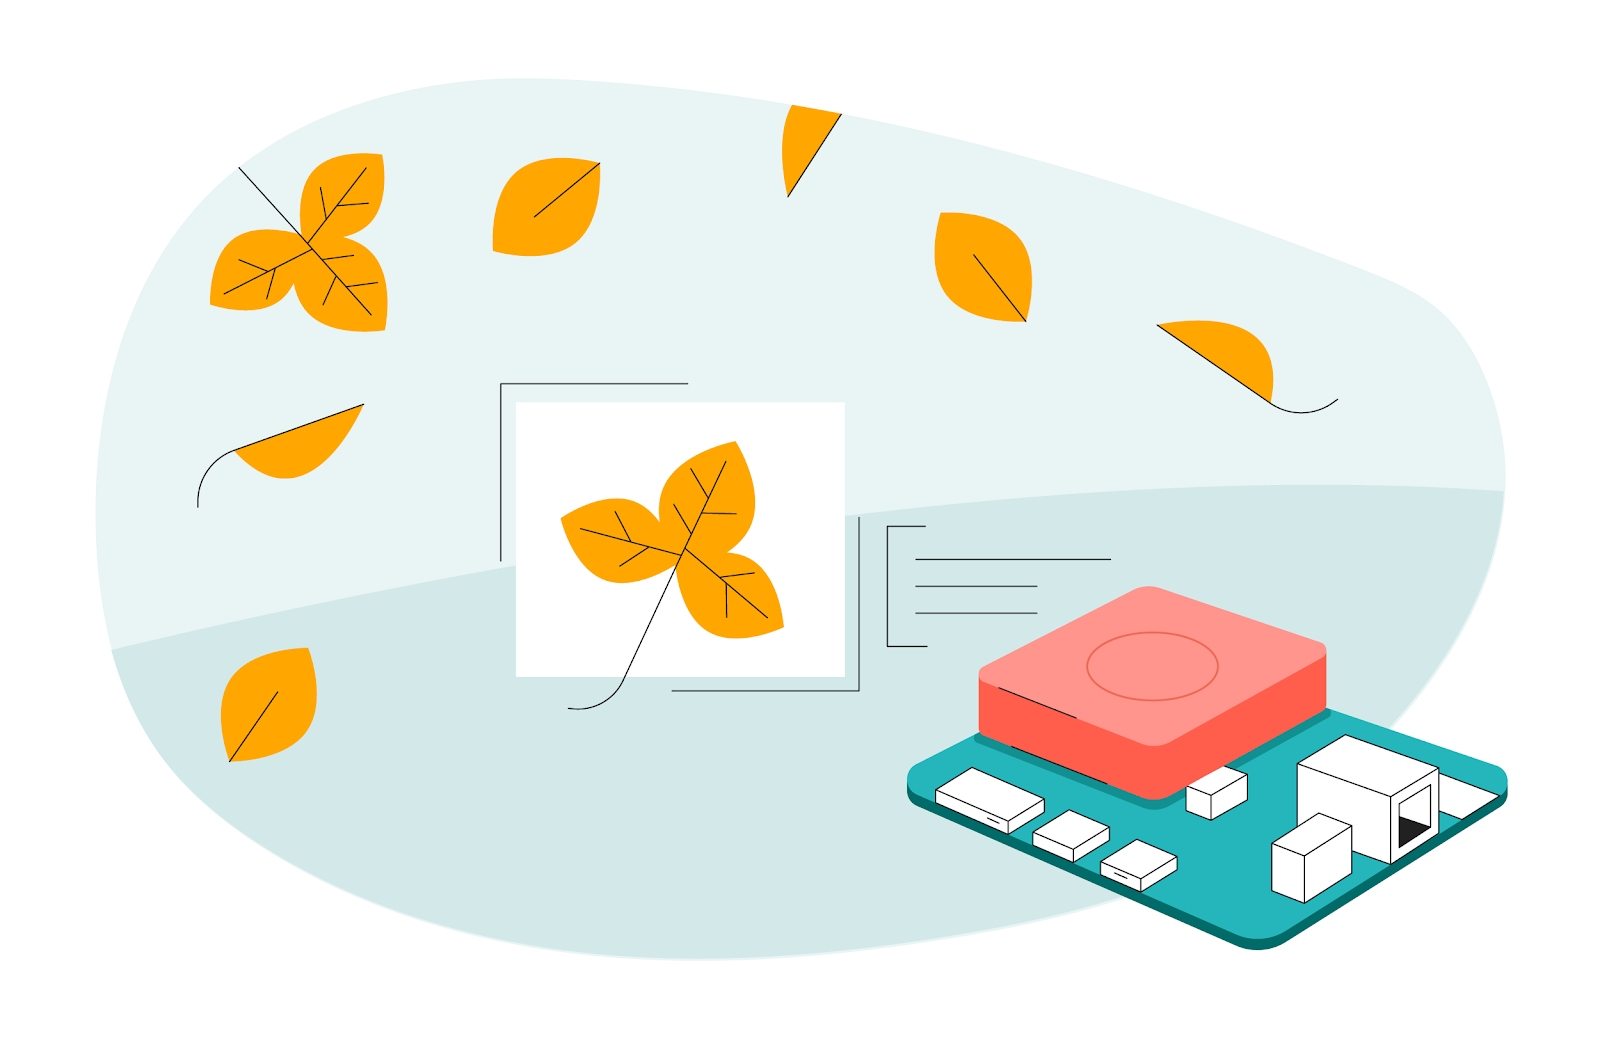 Illustration of the Coral Dev Board placed next to Fall foliage